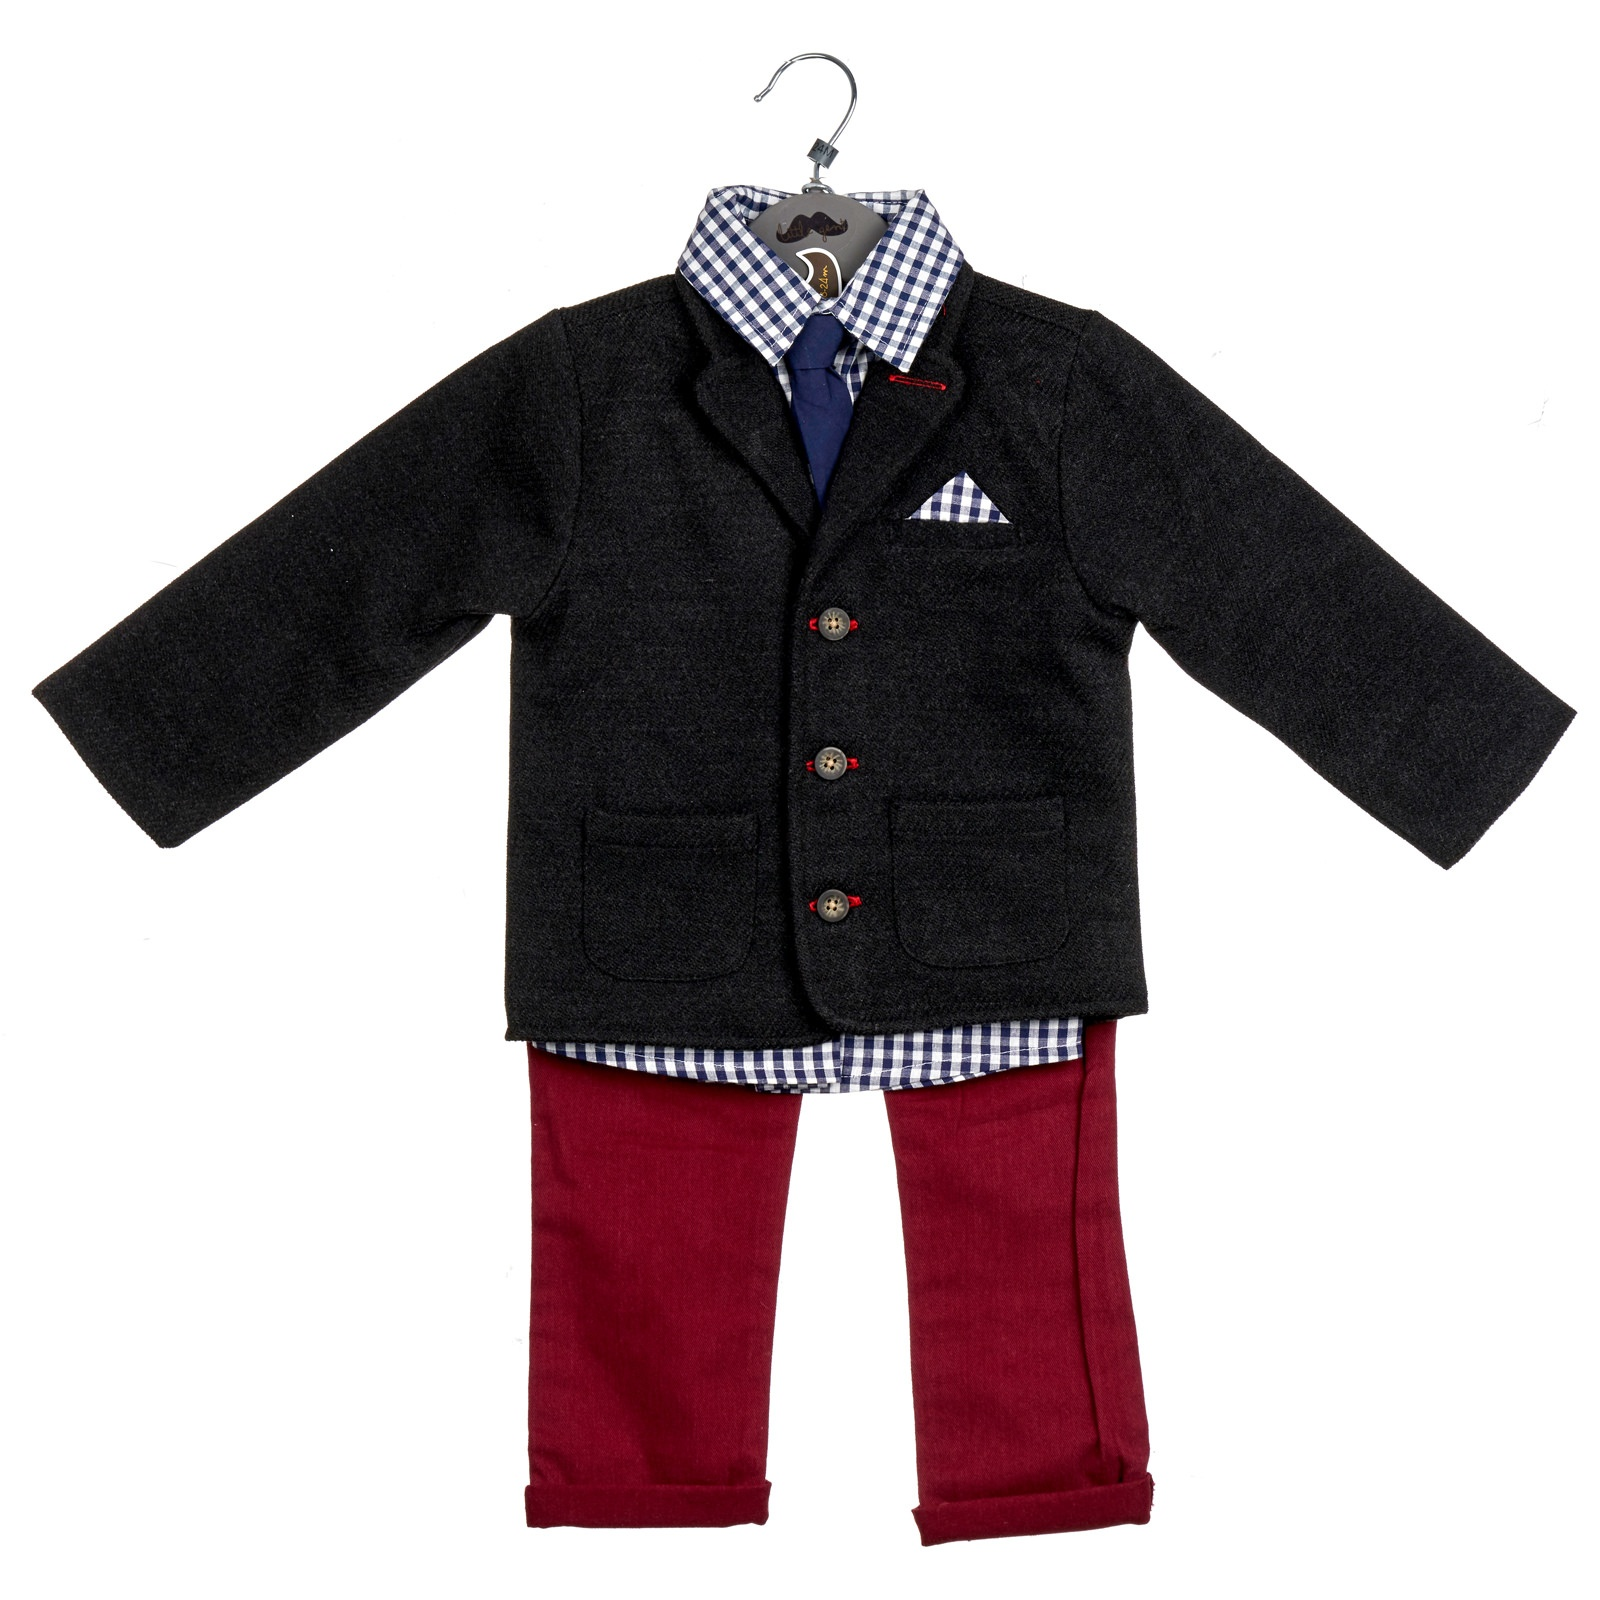 cf5c7446d ... SetsBoys Tweed Blazer Outfit 6-24mth. 🔍. Out Of Stock